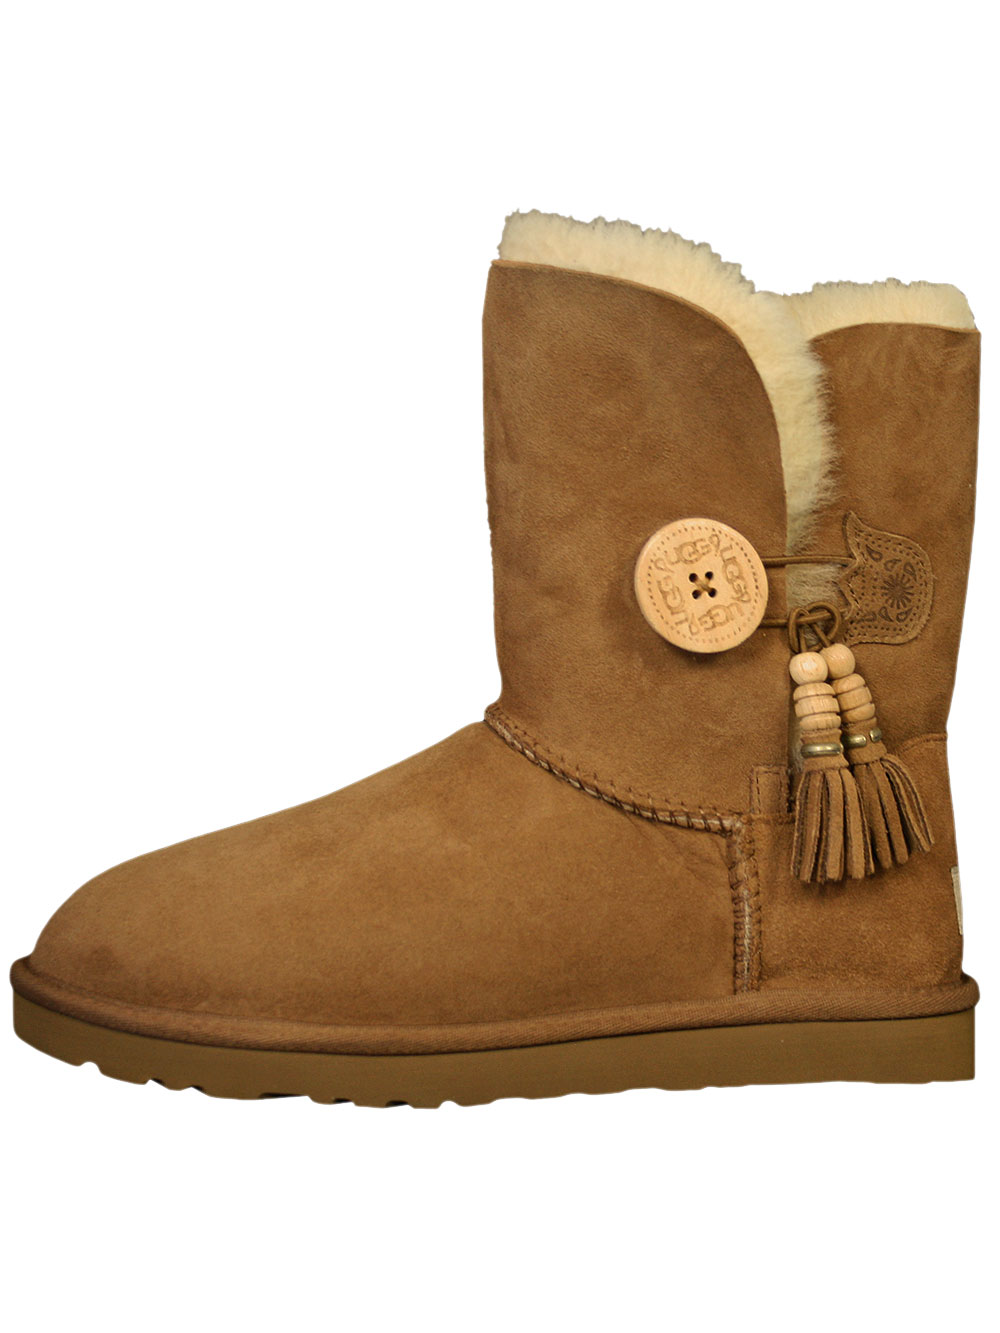 ugg boots damen lammfell schuhe stiefel bailey charms neu winter eyecatcher ebay. Black Bedroom Furniture Sets. Home Design Ideas